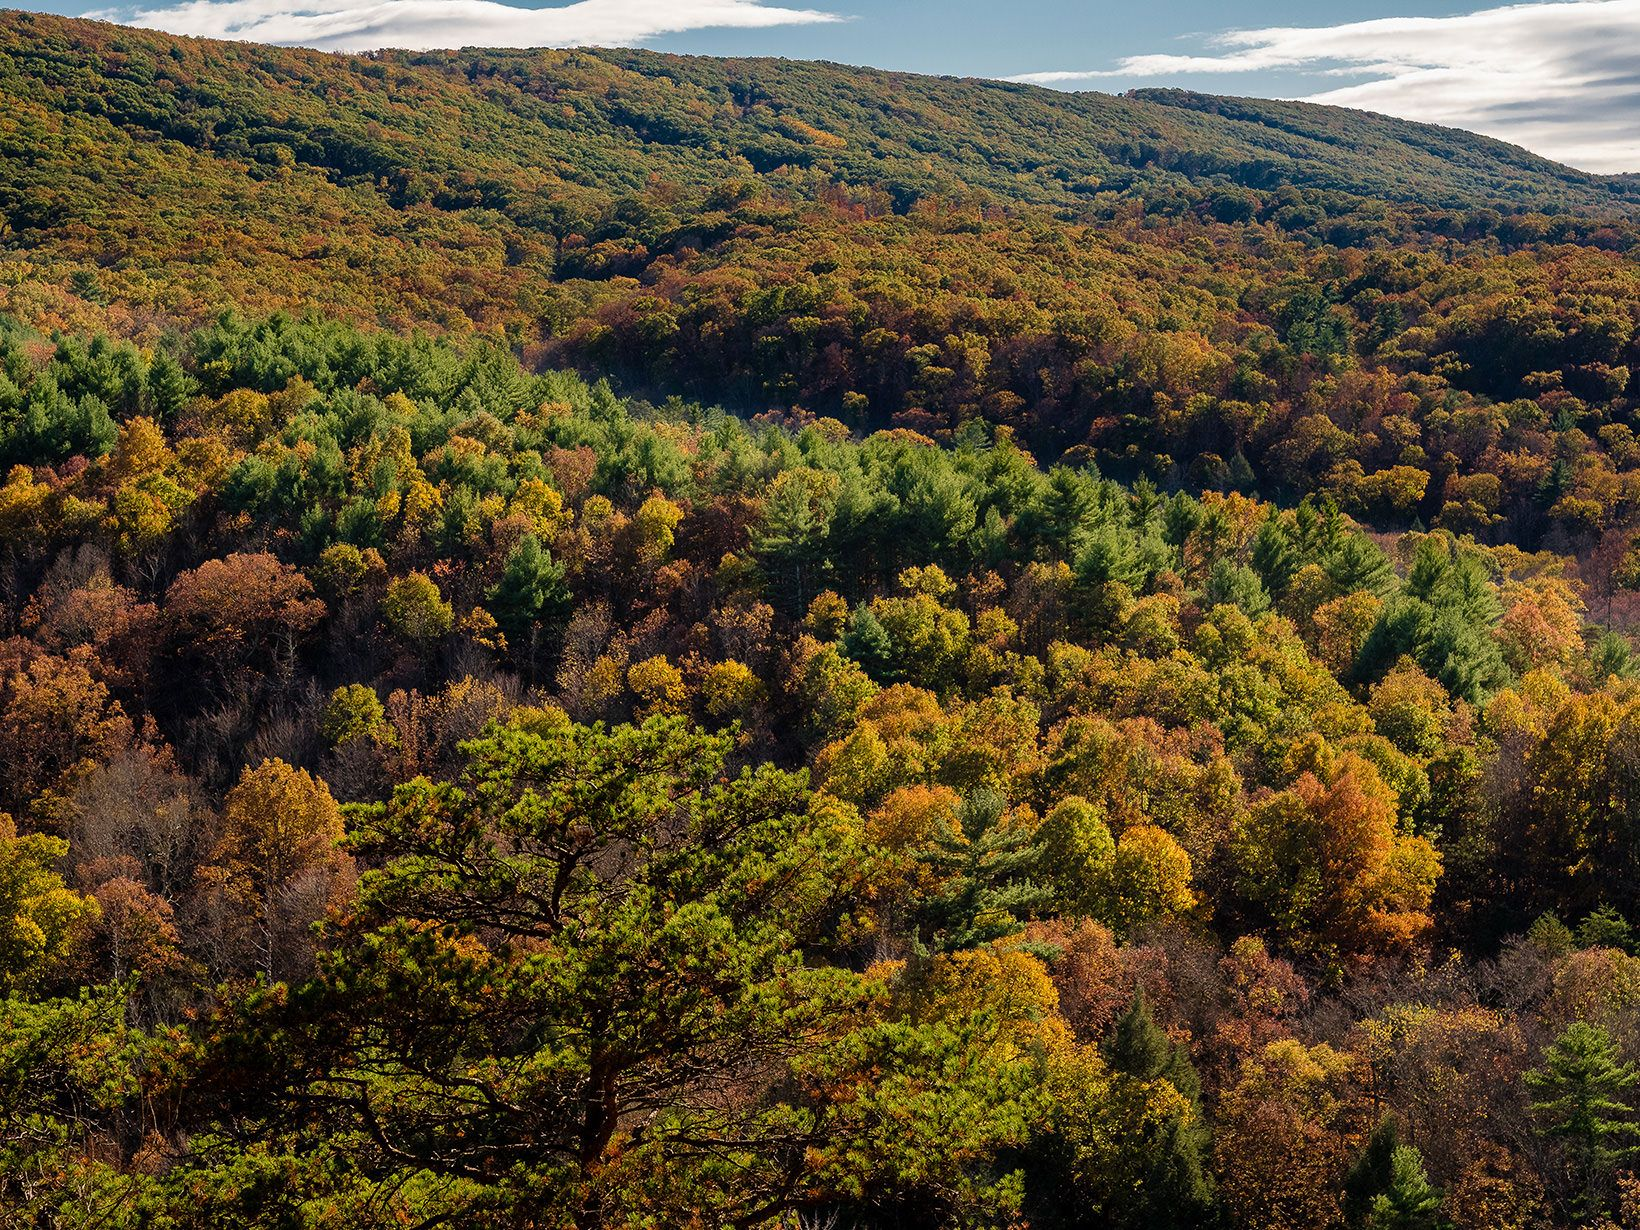 Thick forests cover the sides of a rolling mountain ridge. The trees are beginning to show falls colors of orange and gold.